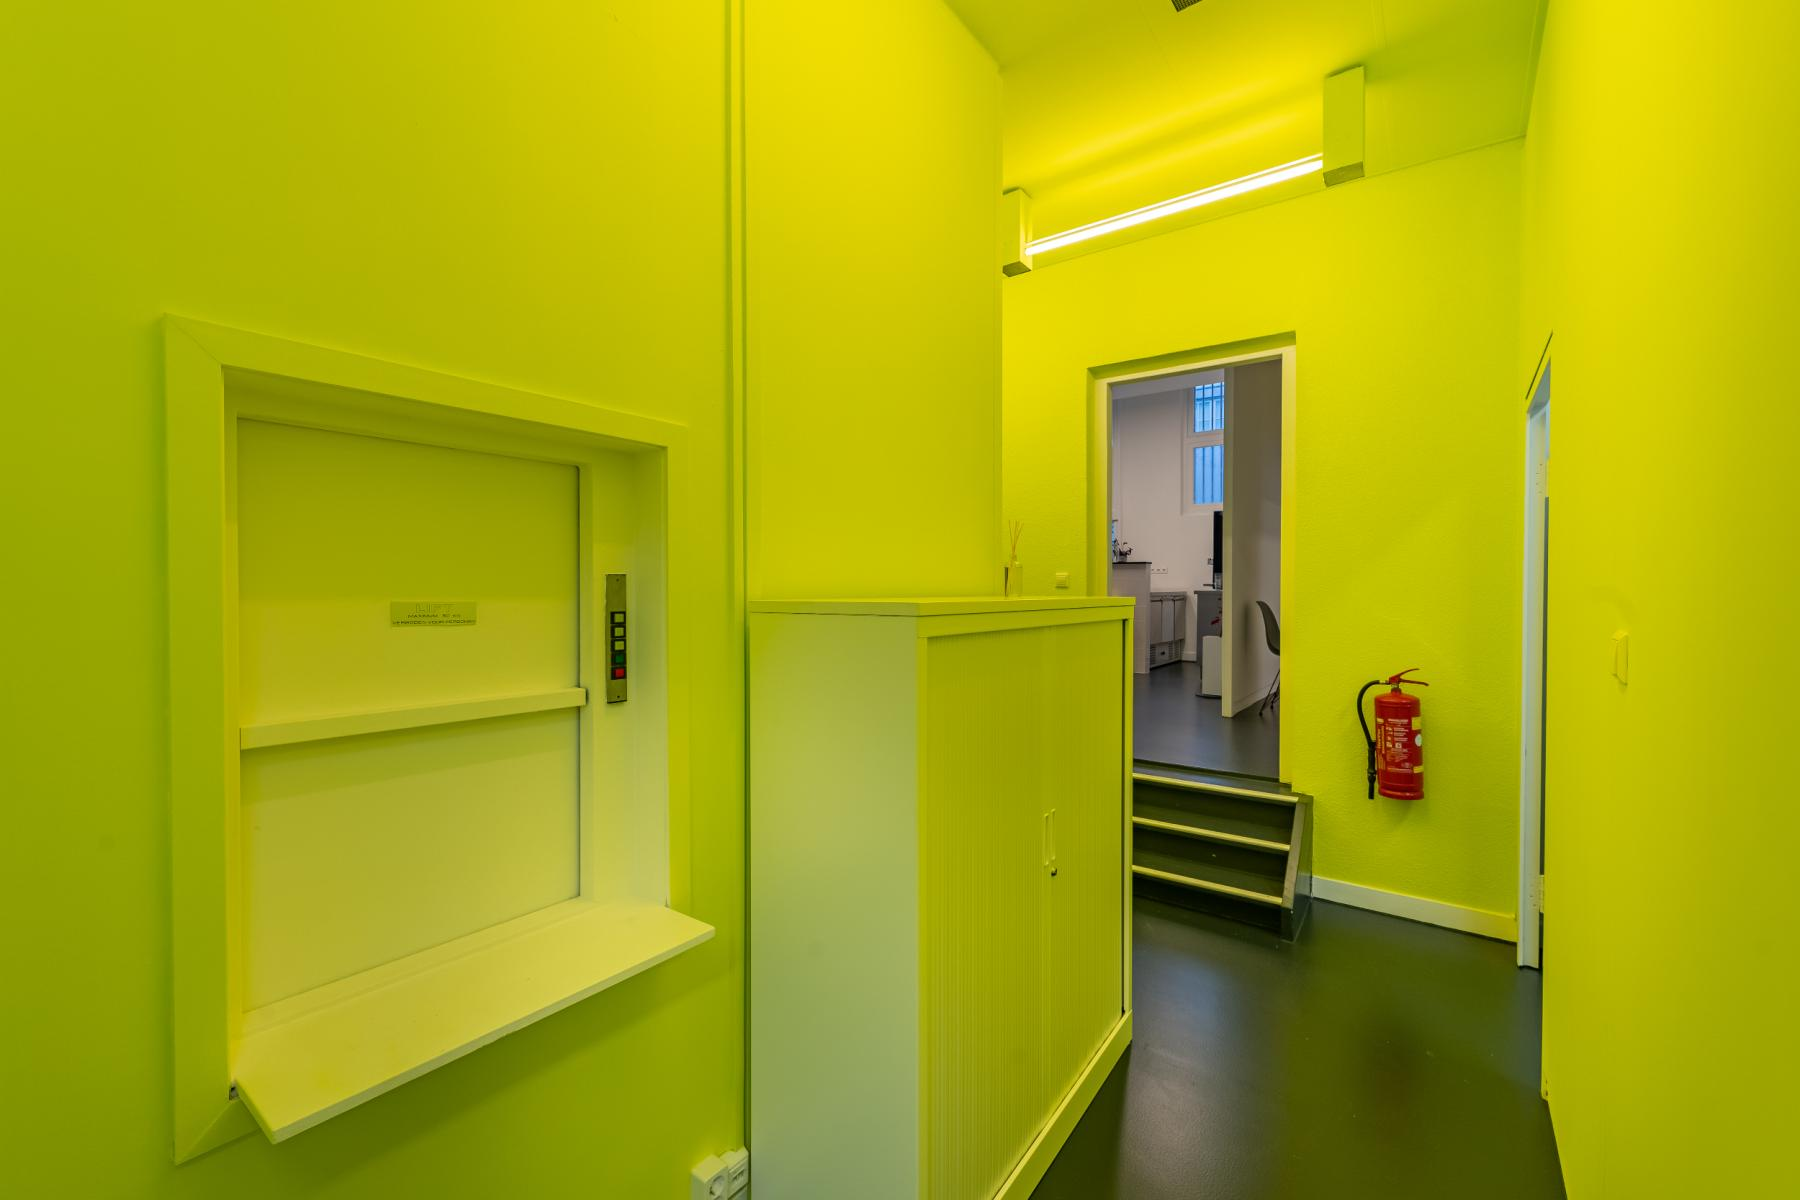 Rent office space Staalstraat 7a, Amsterdam (10)